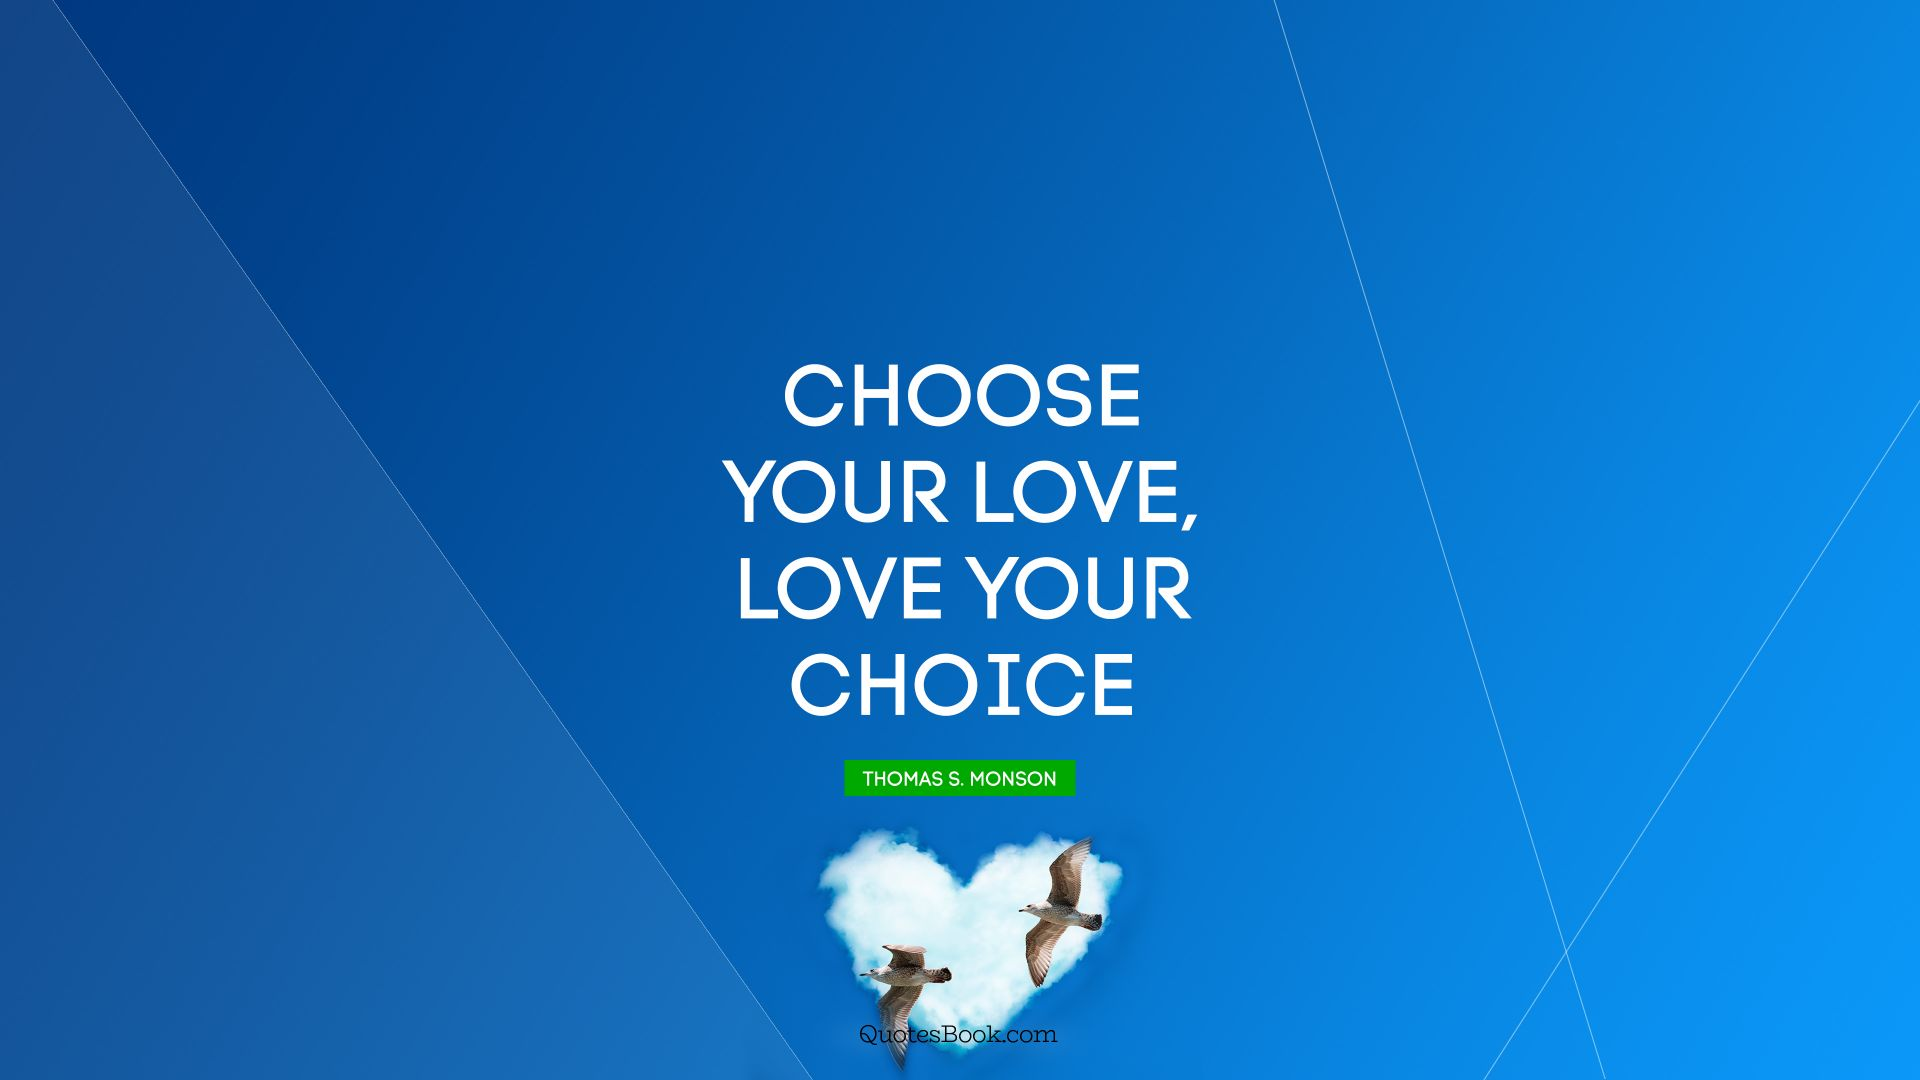 Choose your love, Love your choice. - Quote by Thomas S. Monson